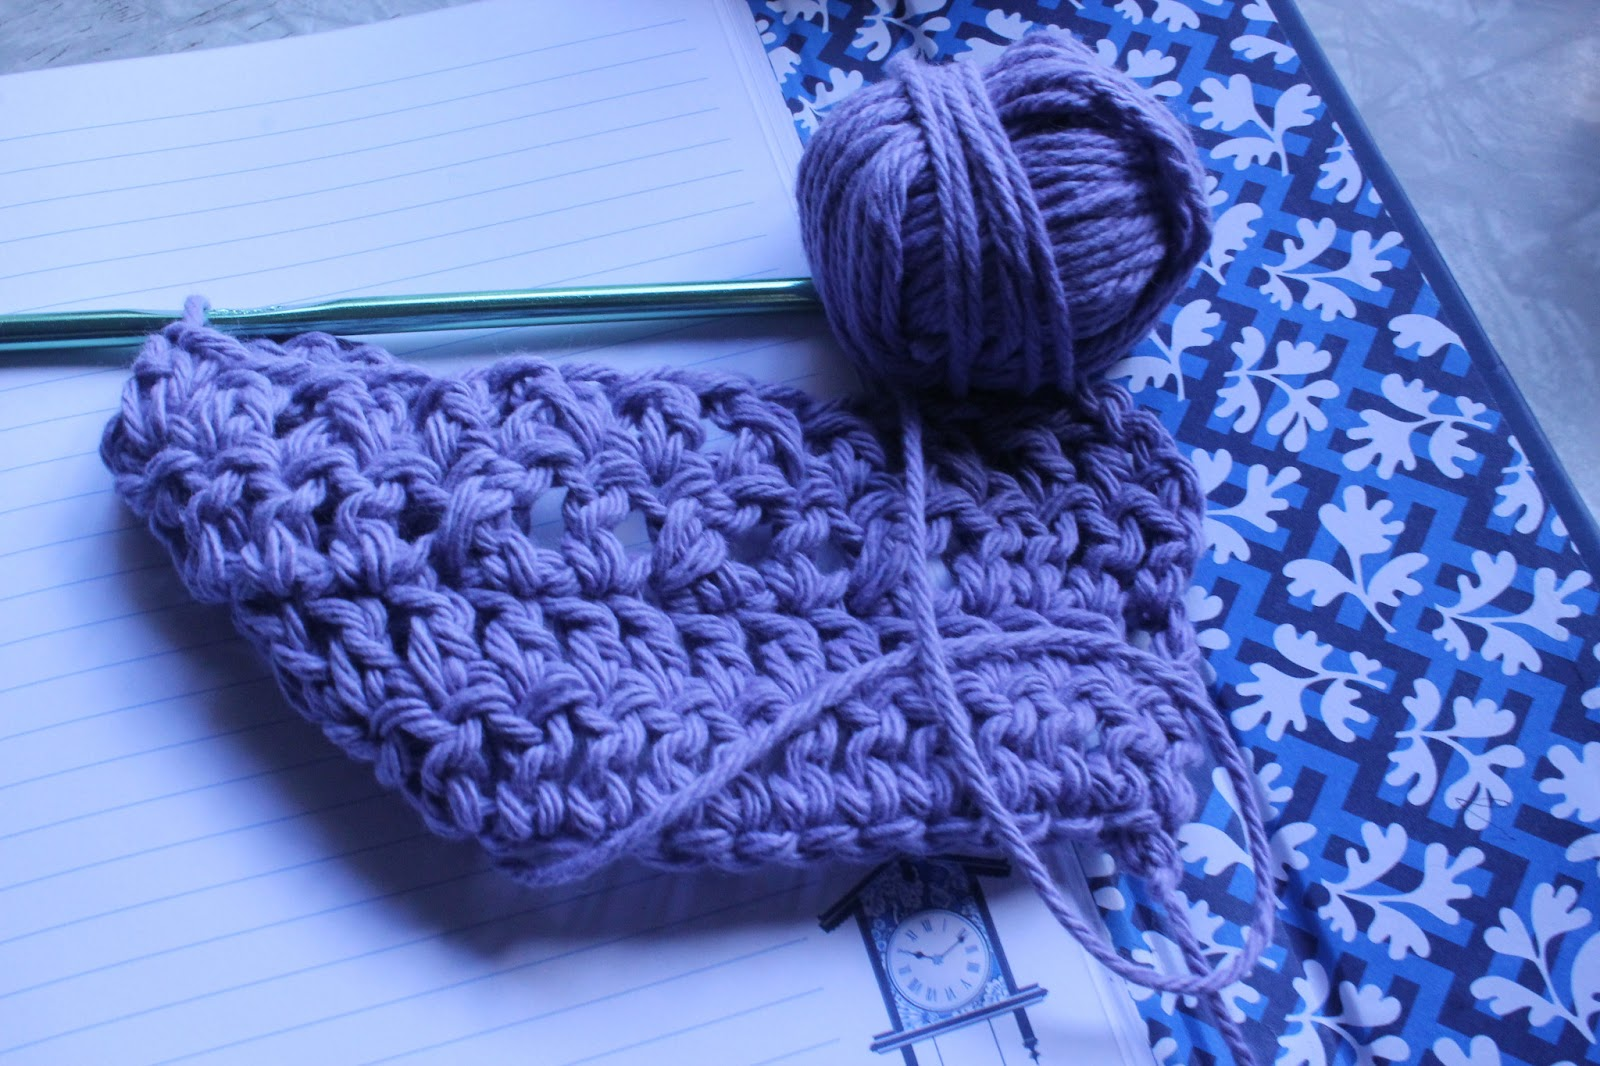 Crocheting Left Handed : ... Life at Leisure: Learn to Crochet: Crochet Cross Stitch (Left-Handed